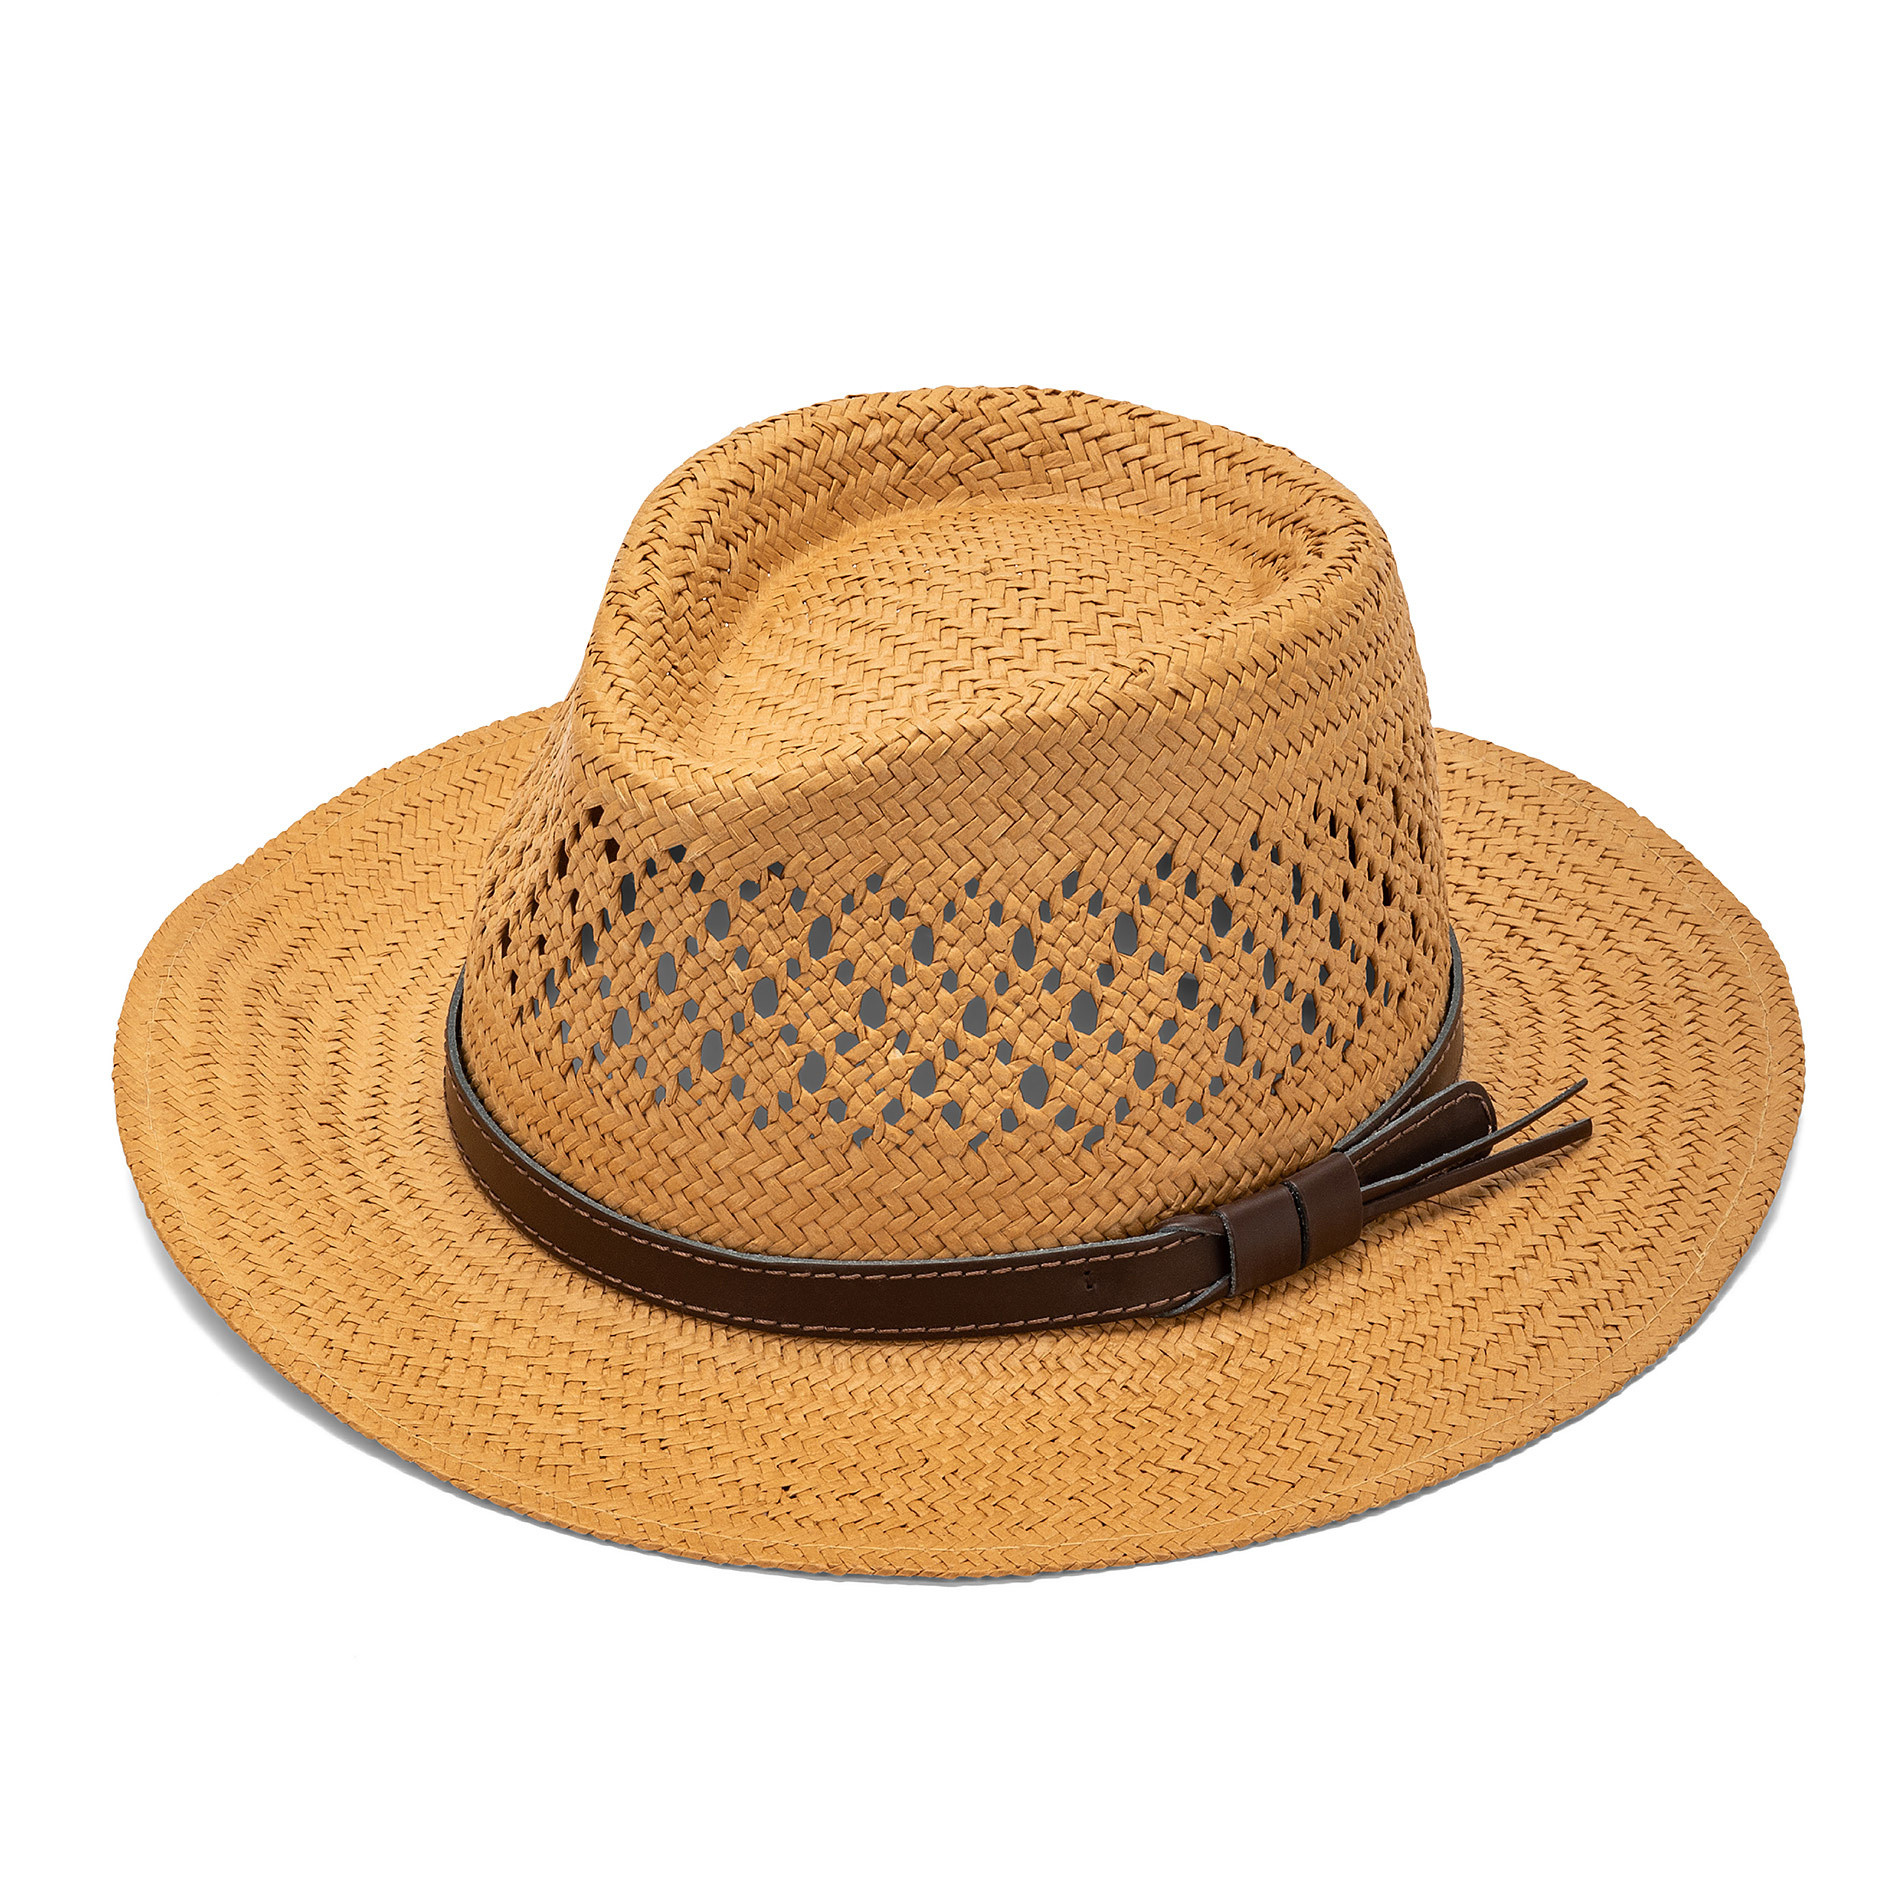 Cappello stile panama in paglia, Beige, large image number 0